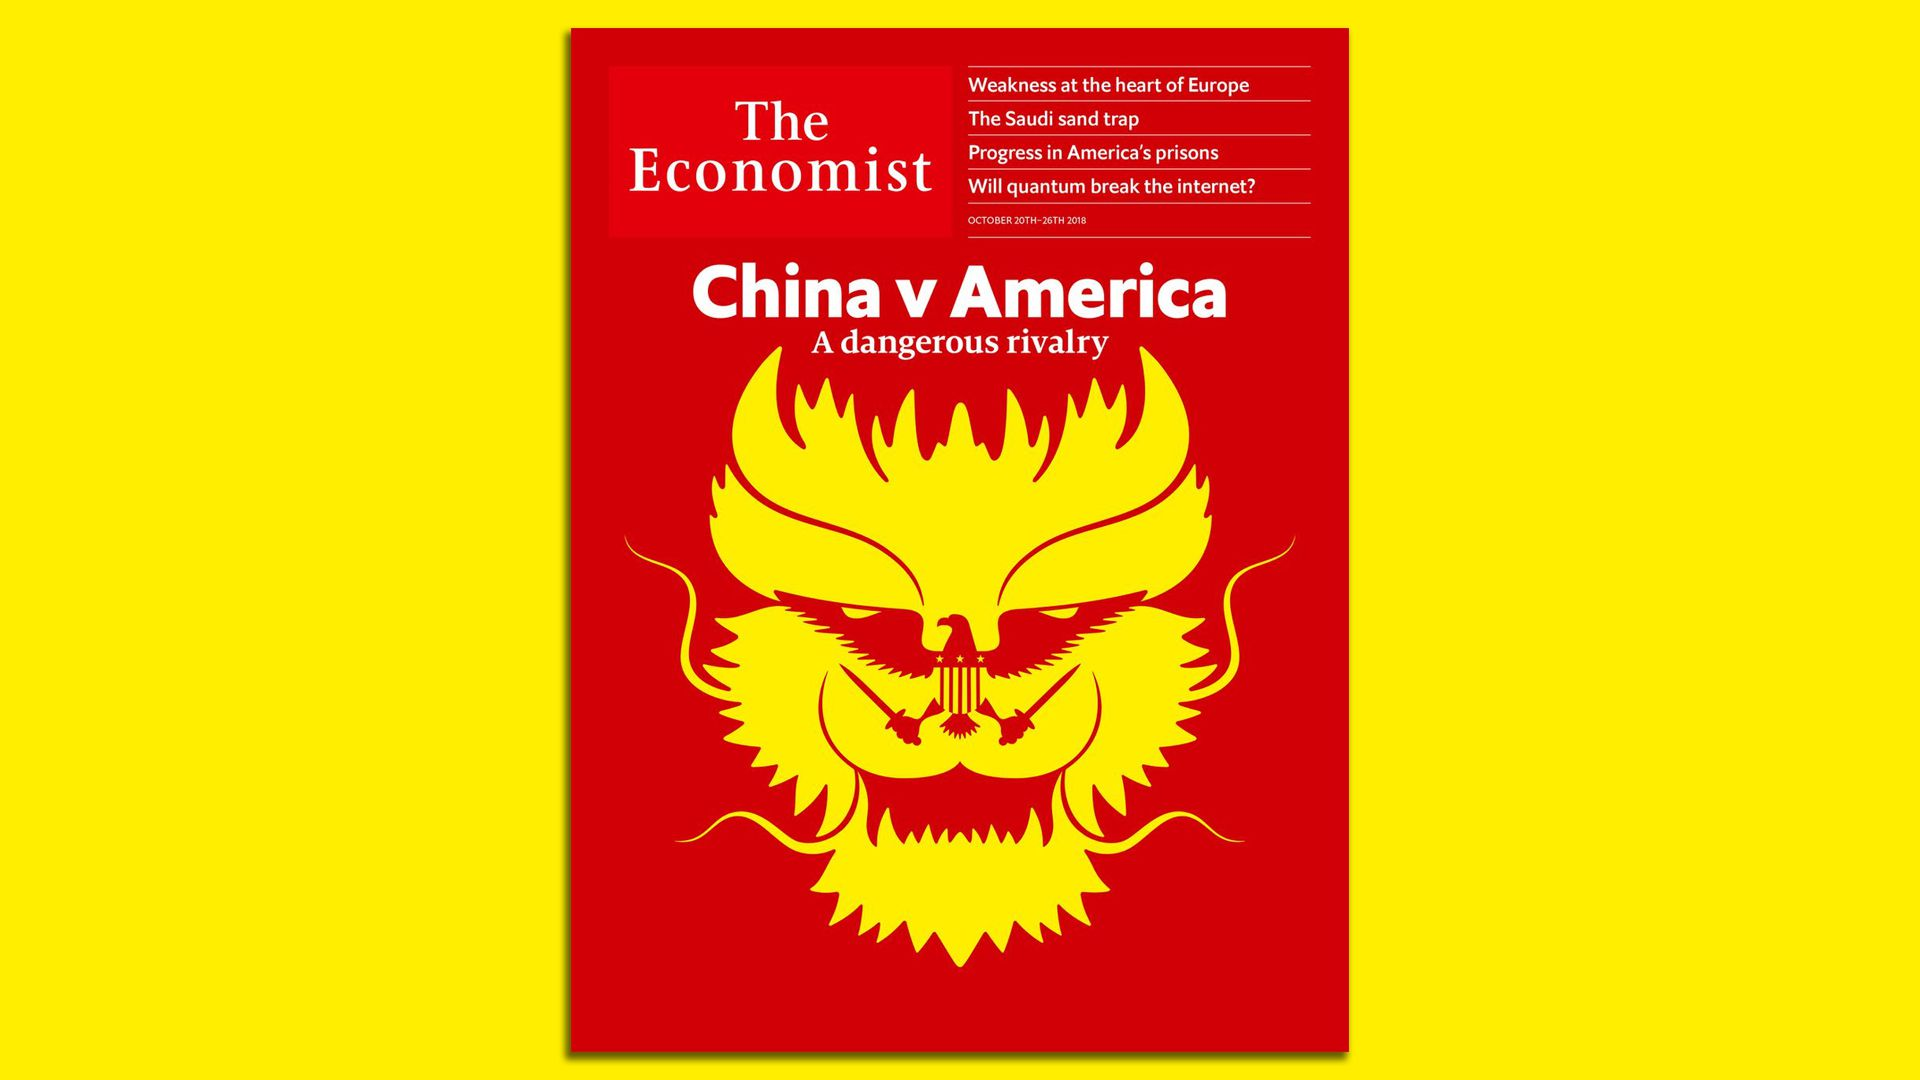 The Economist cover picture, showing a yellow ferocious-looking dragon on a red background